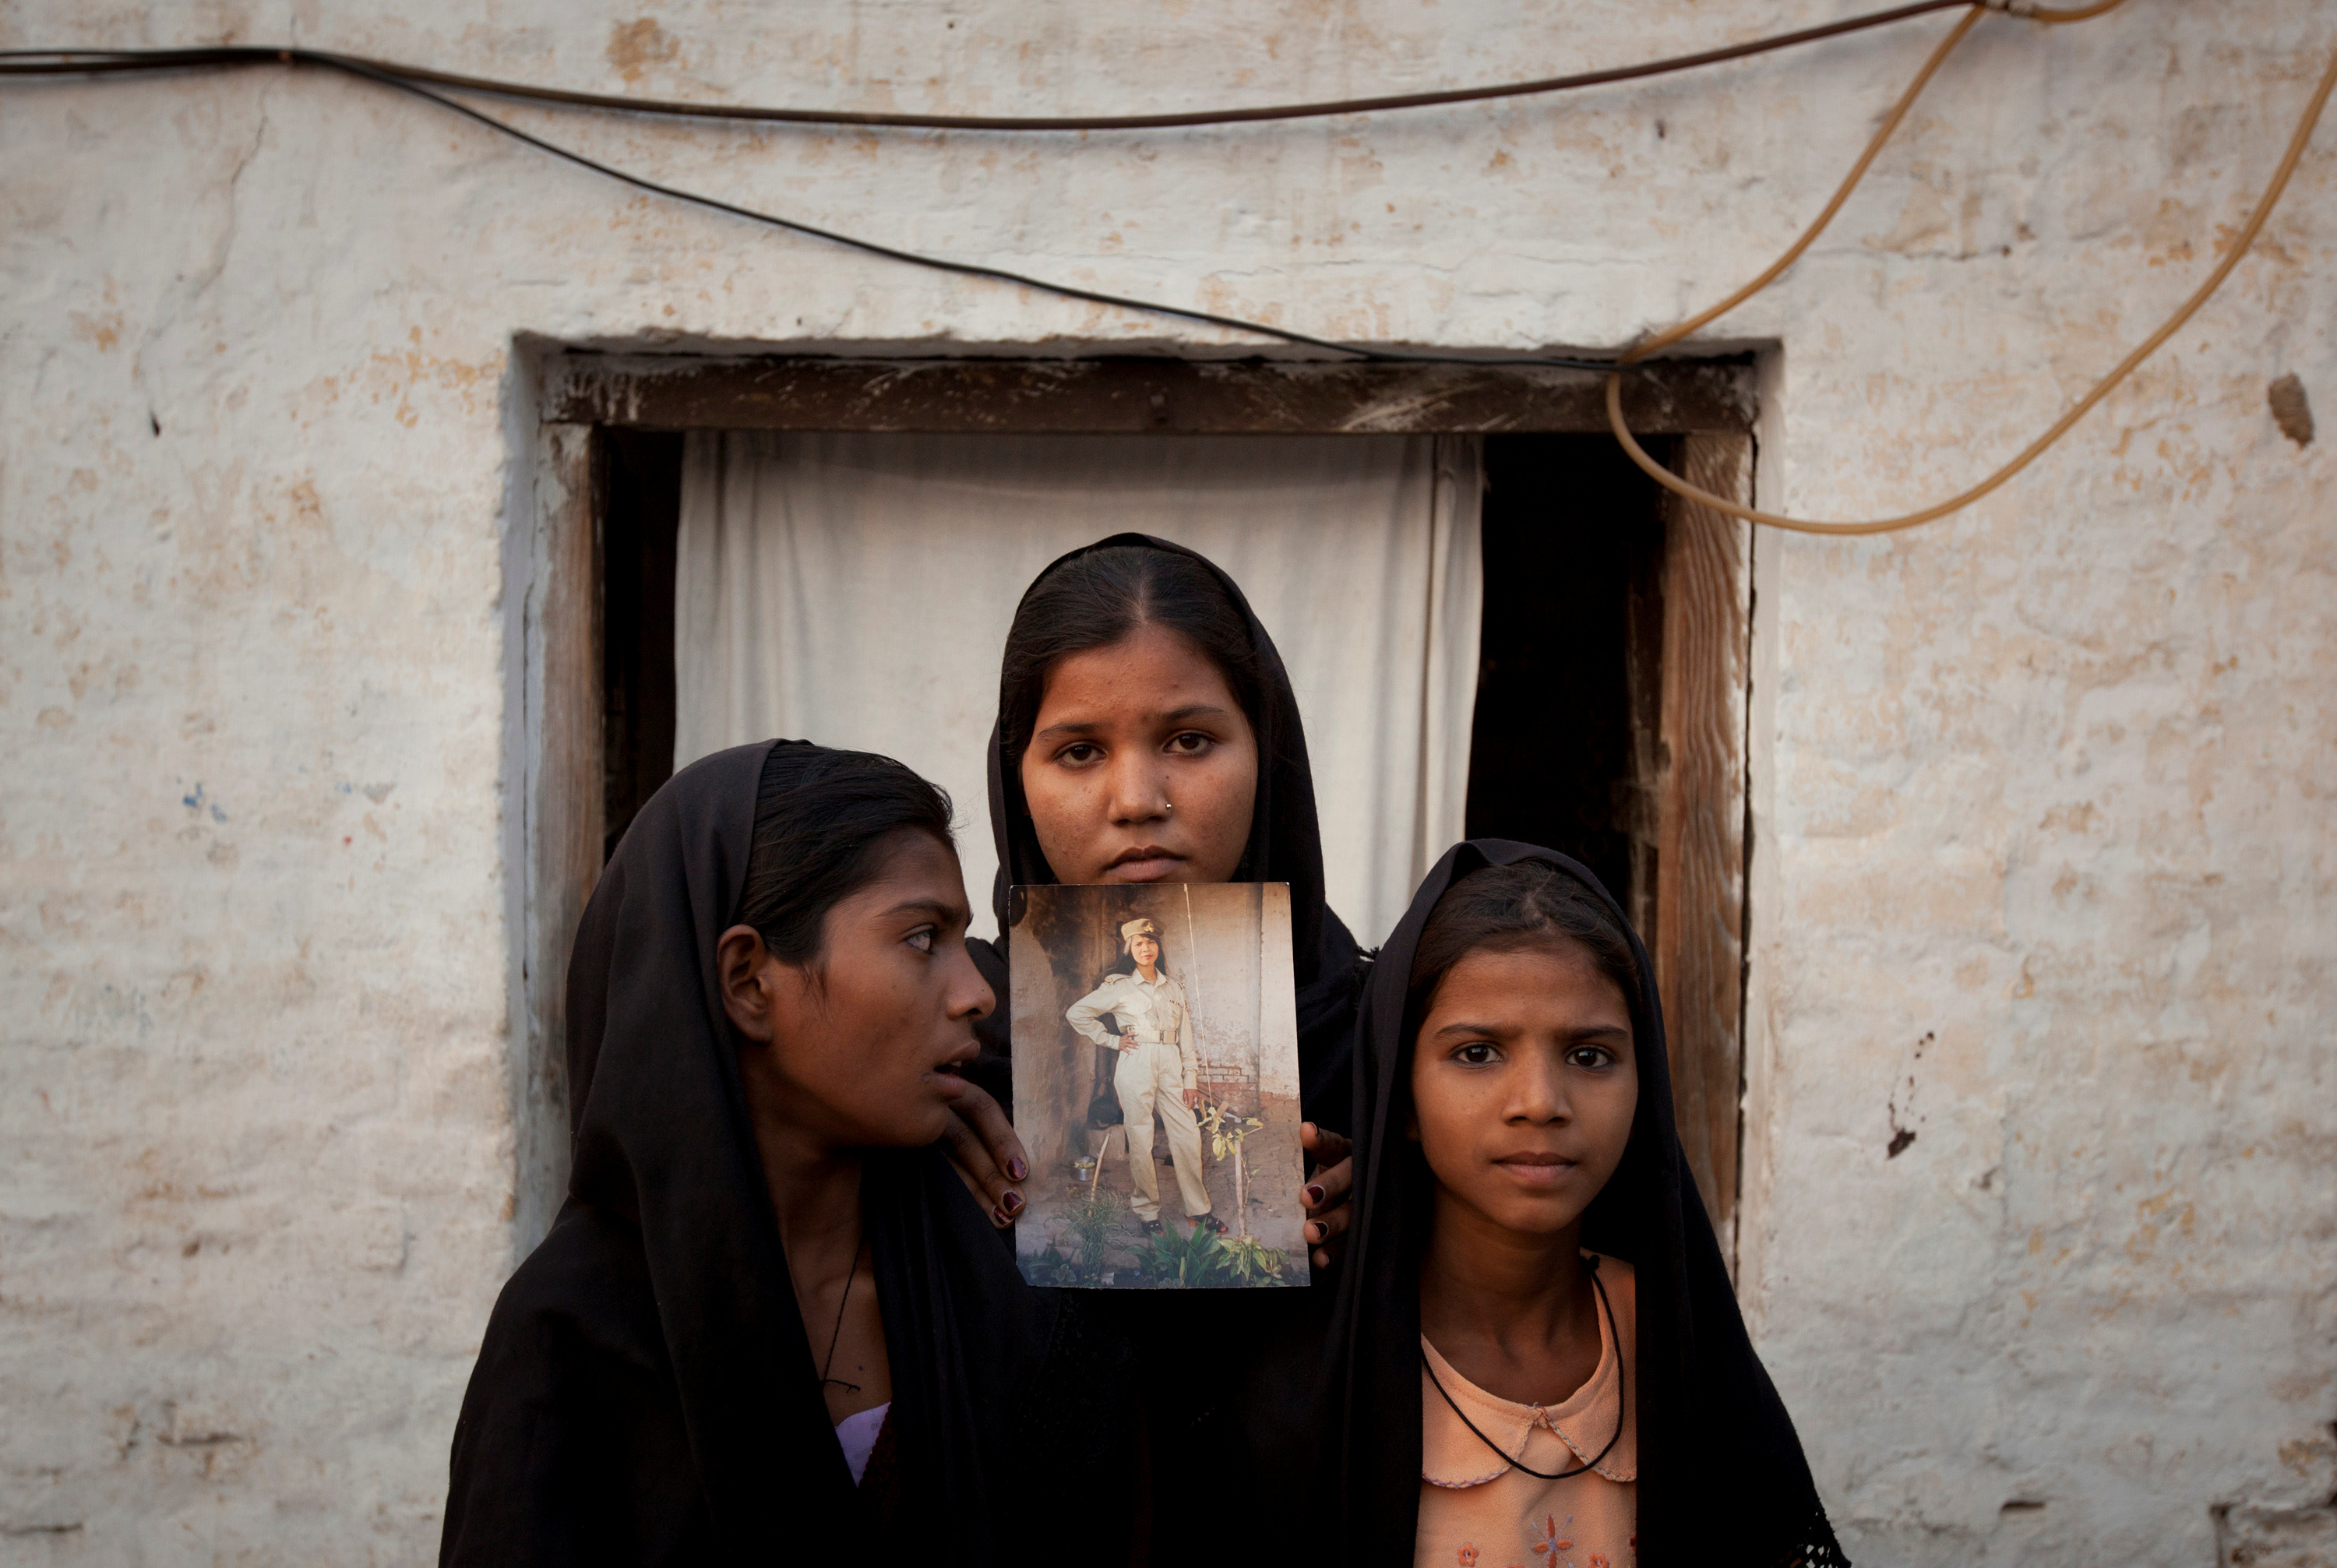 FILE PHOTO: The daughters of Pakistani Christian woman Asia Bibi pose with an image of their mother while standing outside their residence in Sheikhupura located in Pakistan's Punjab Province November 13, 2010. REUTERS/Adrees Latif/File Photo